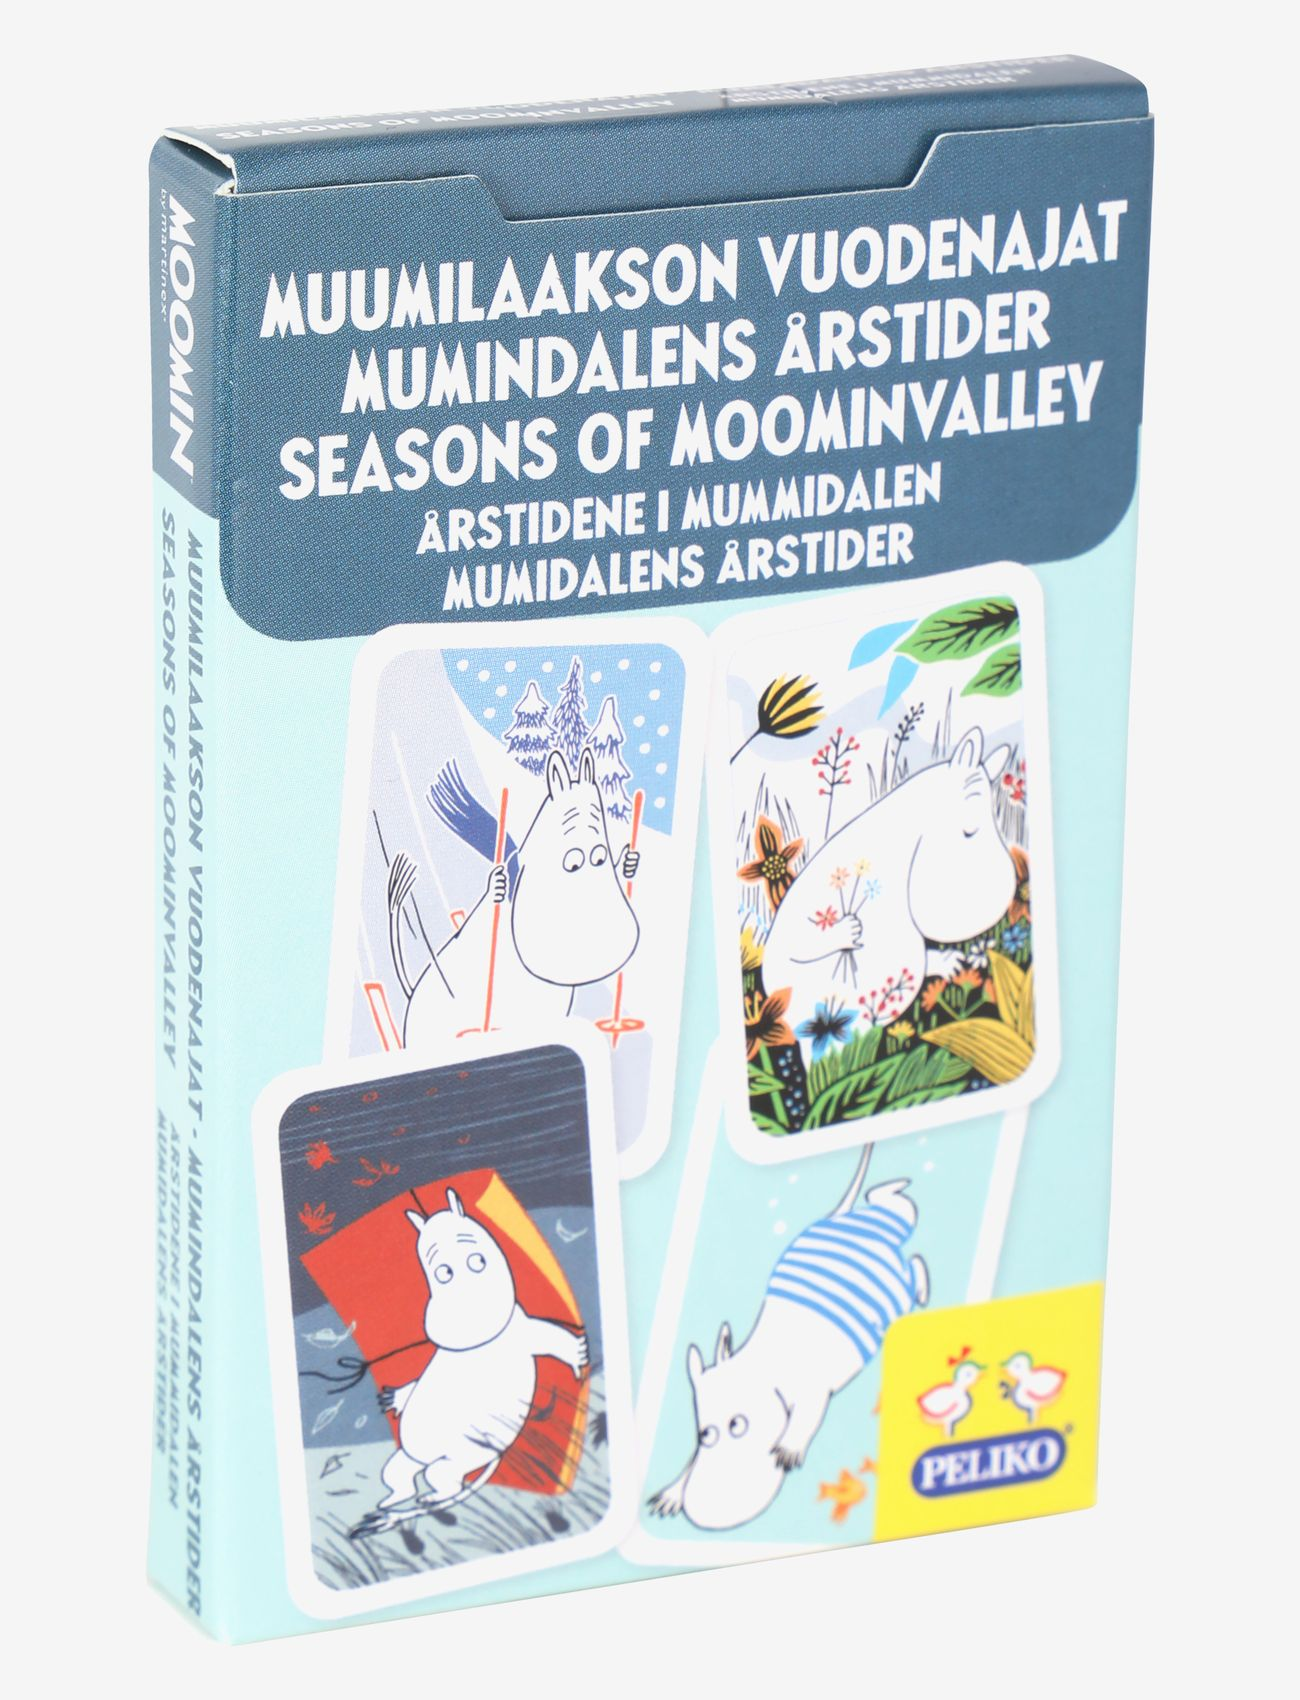 MOOMINVALLEY CARD GAME